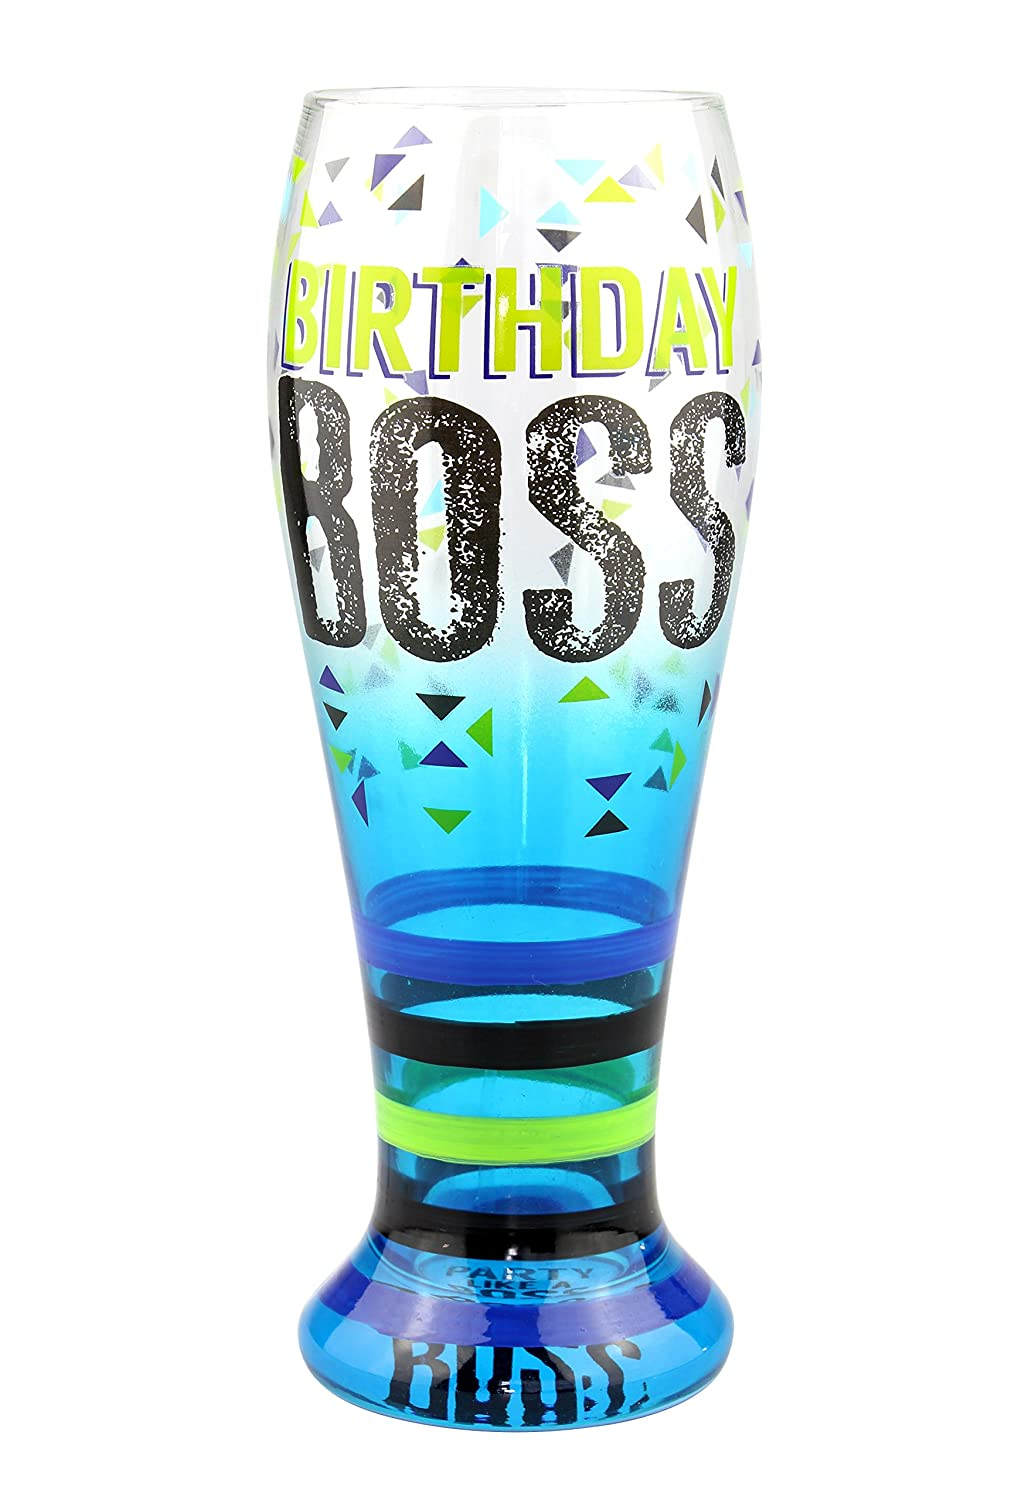 And Sister Multicolor Ts 7404c Mom Brother Top Shelf Tall Paintedbirthday Boss Pilsner Glass Decorative Beer Glasses For Friends And Family Unique Gift Ideas For Dad